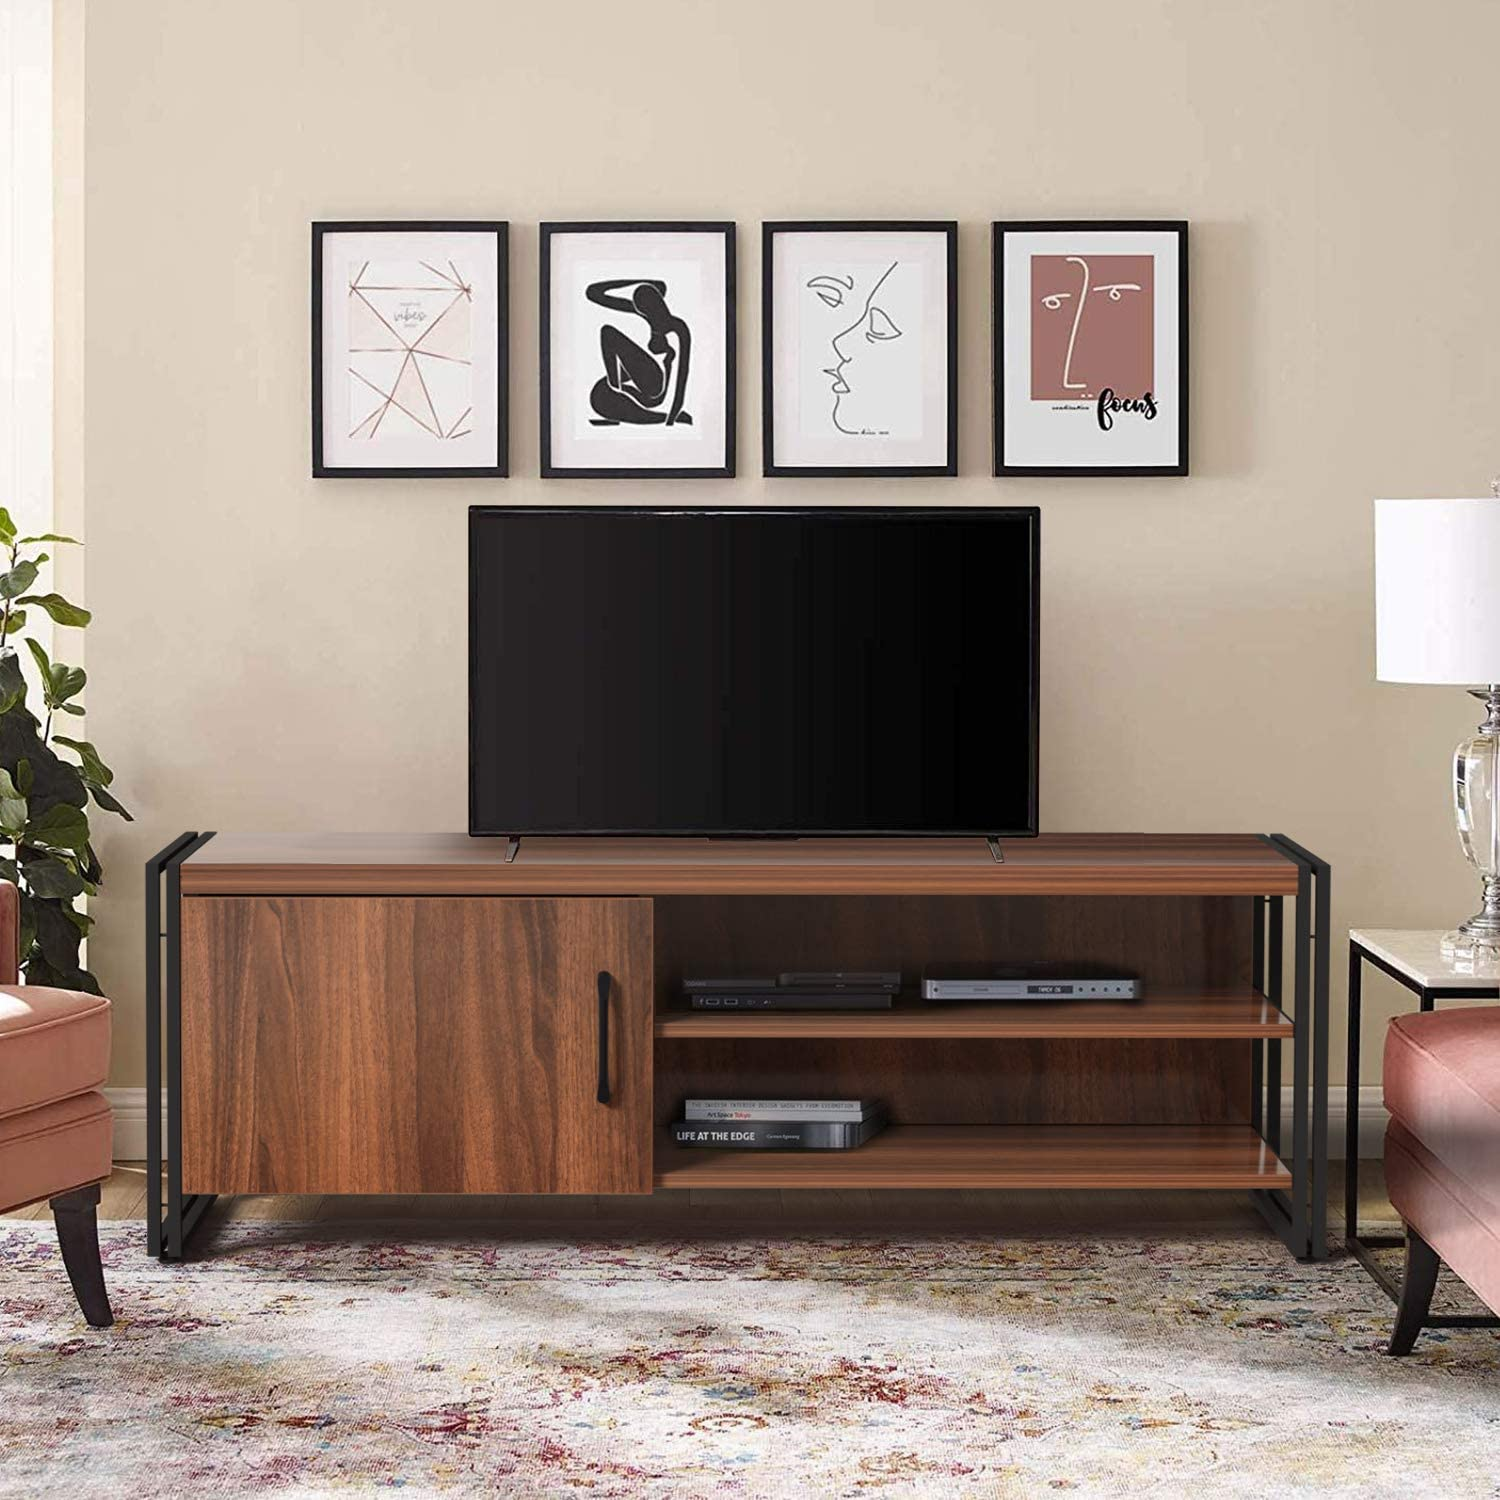 Amazon Com Amzdeal Tv Stand Cabinet For Tvs Up To 50 Inch Wood